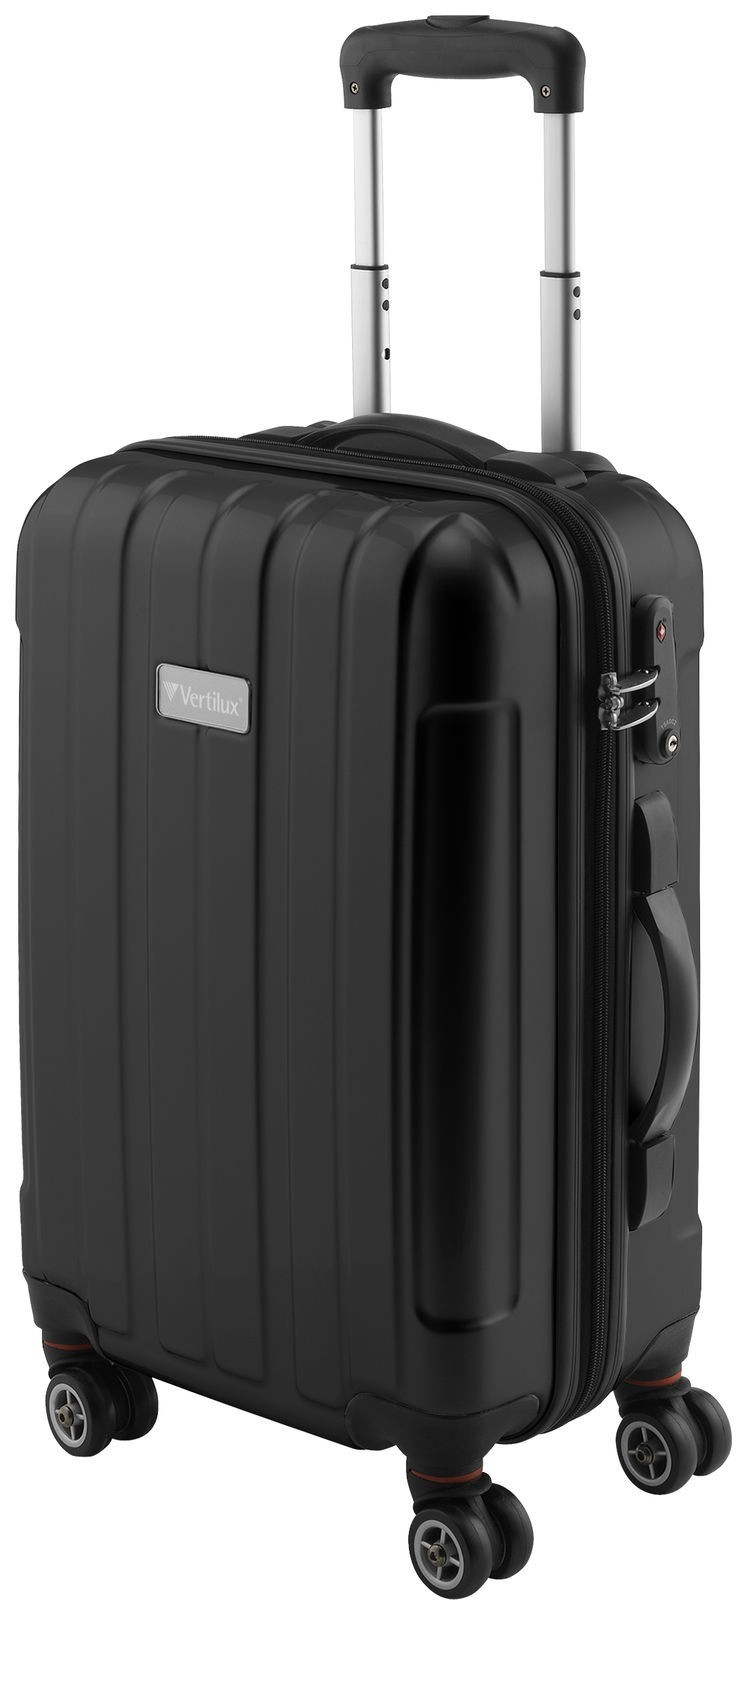 valise roulettes 20 carry on pour entreprise par kelcom. Black Bedroom Furniture Sets. Home Design Ideas